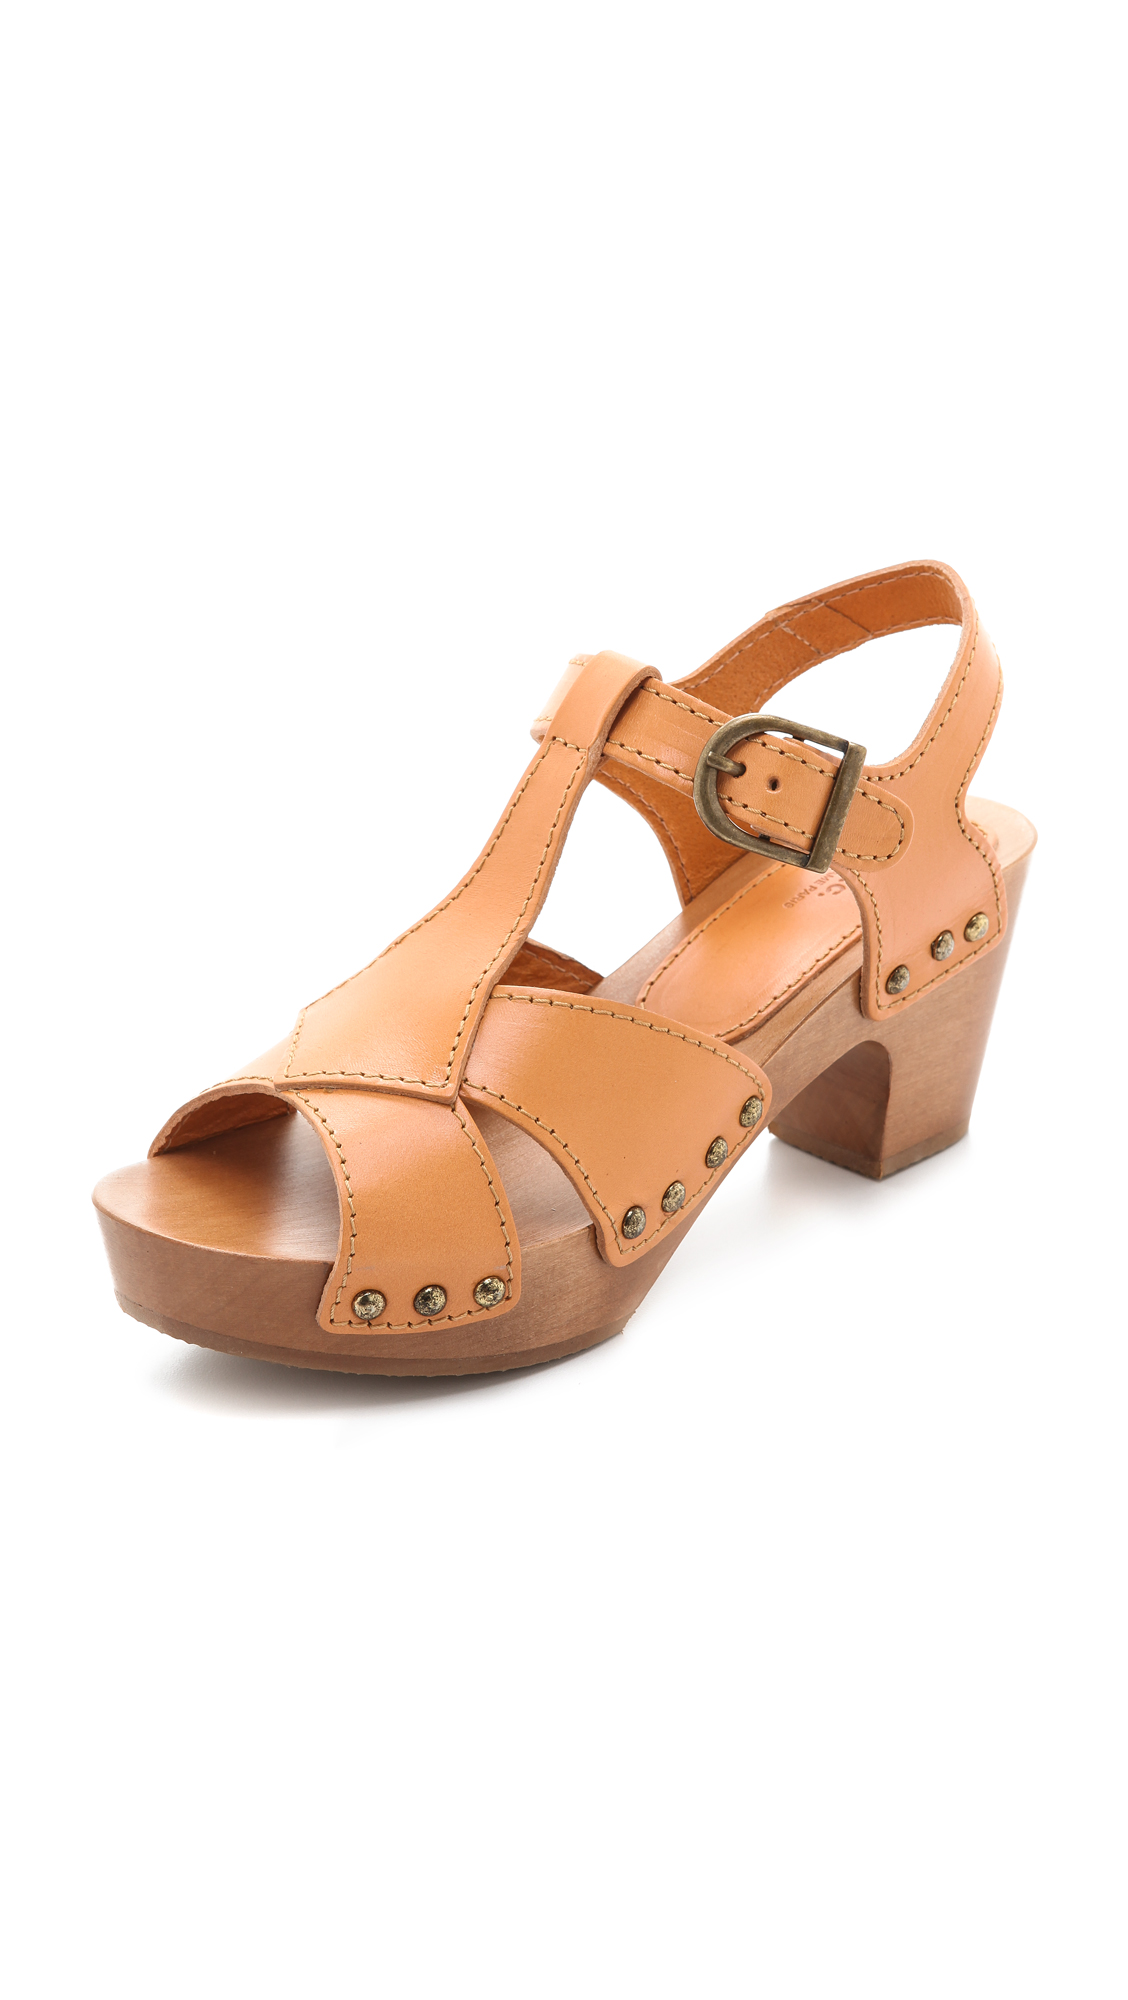 Lyst A P C Slingback Clog Sandals In Brown